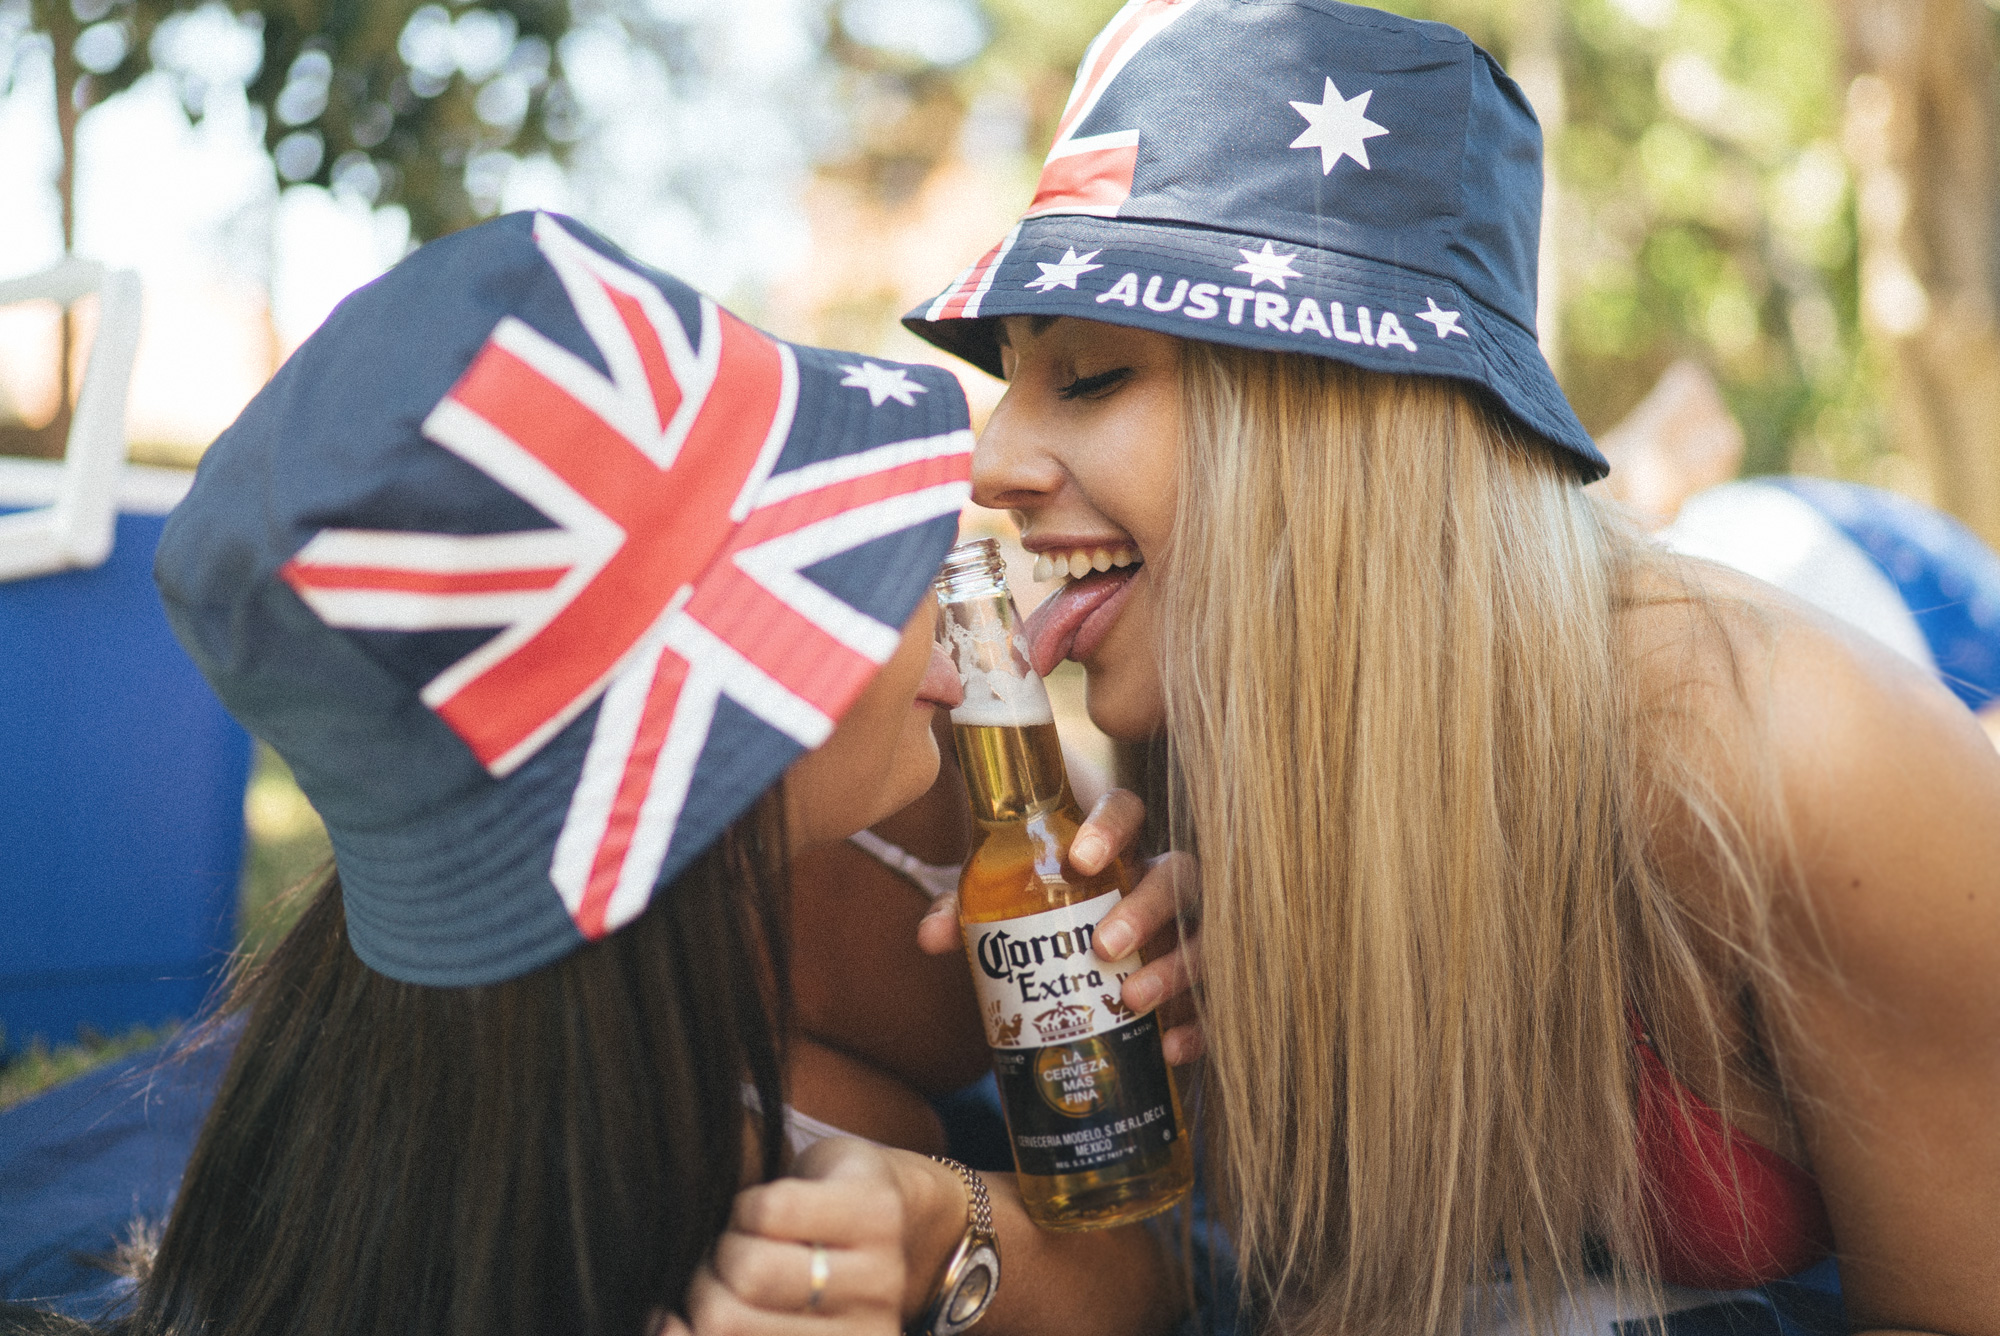 australiaday_babes_garden_shoot_justinfox_bottle_2